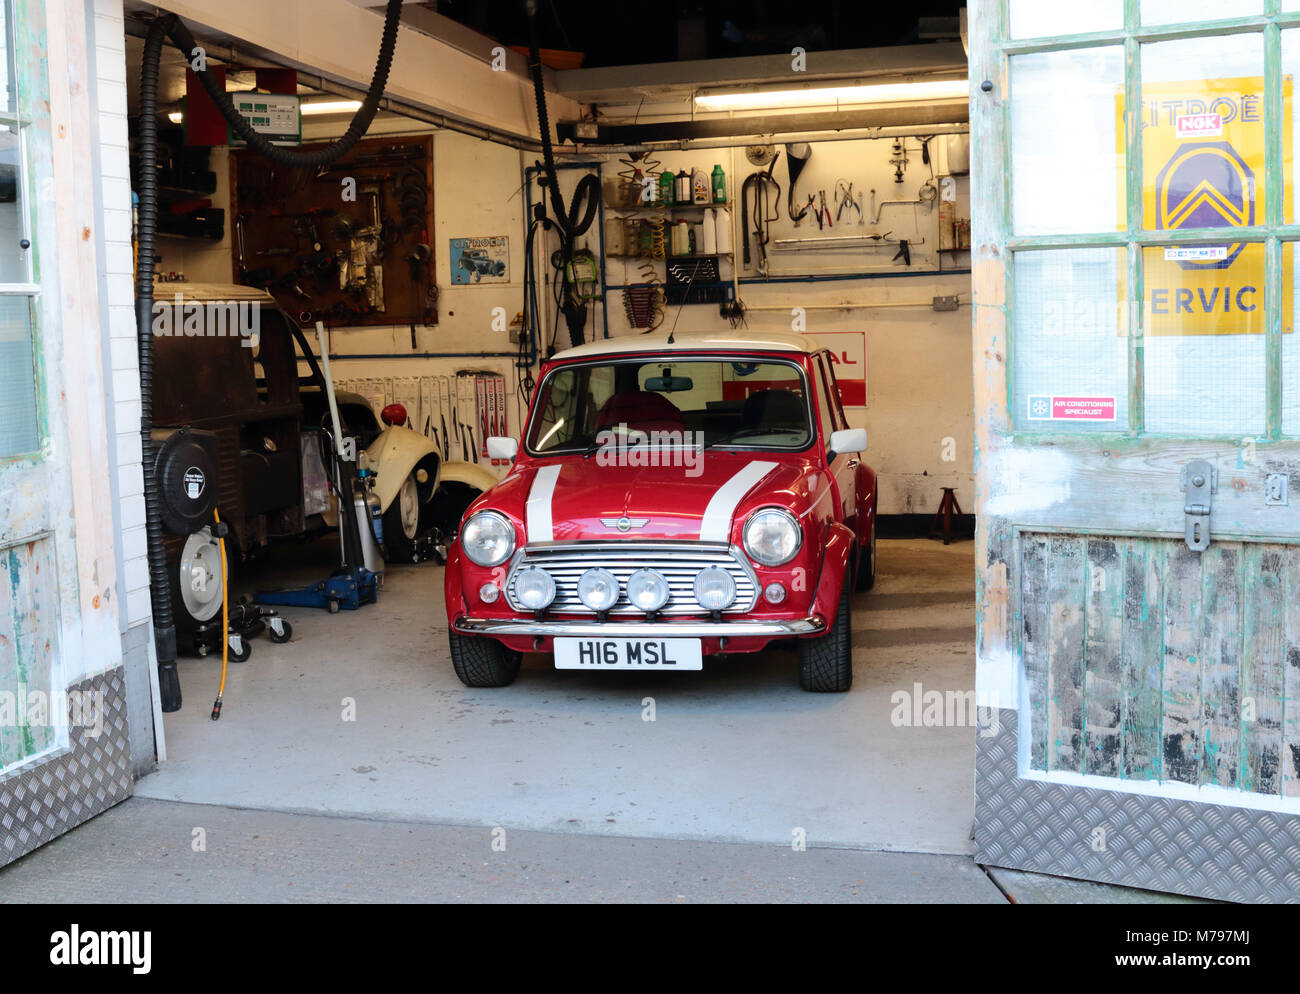 Old garage workshop stock photos old garage workshop for Garage mini cooper annemasse